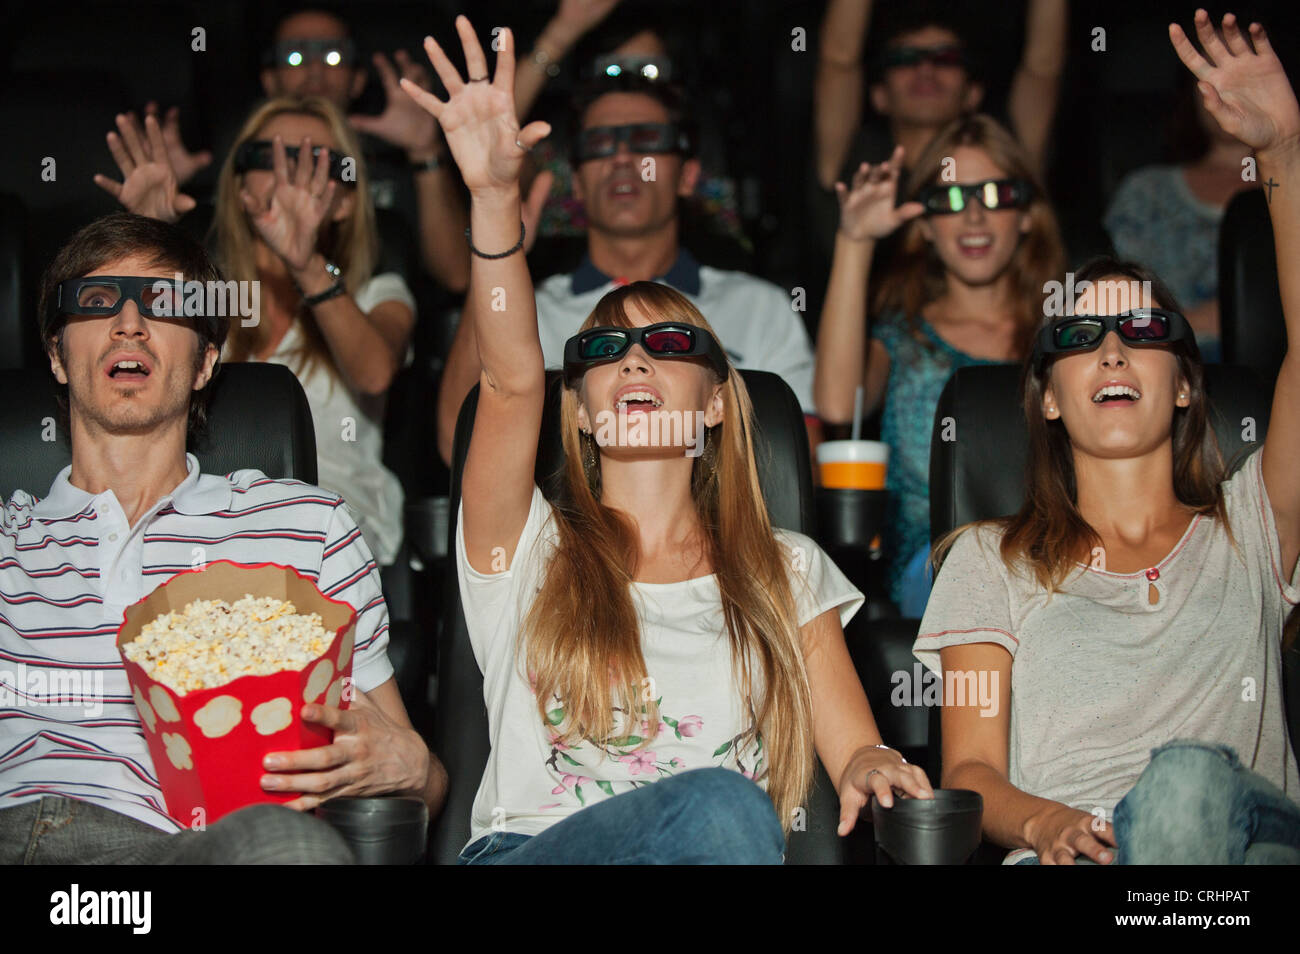 Audience wearing 3-D glasses in movie theater, arms reaching out - Stock Image